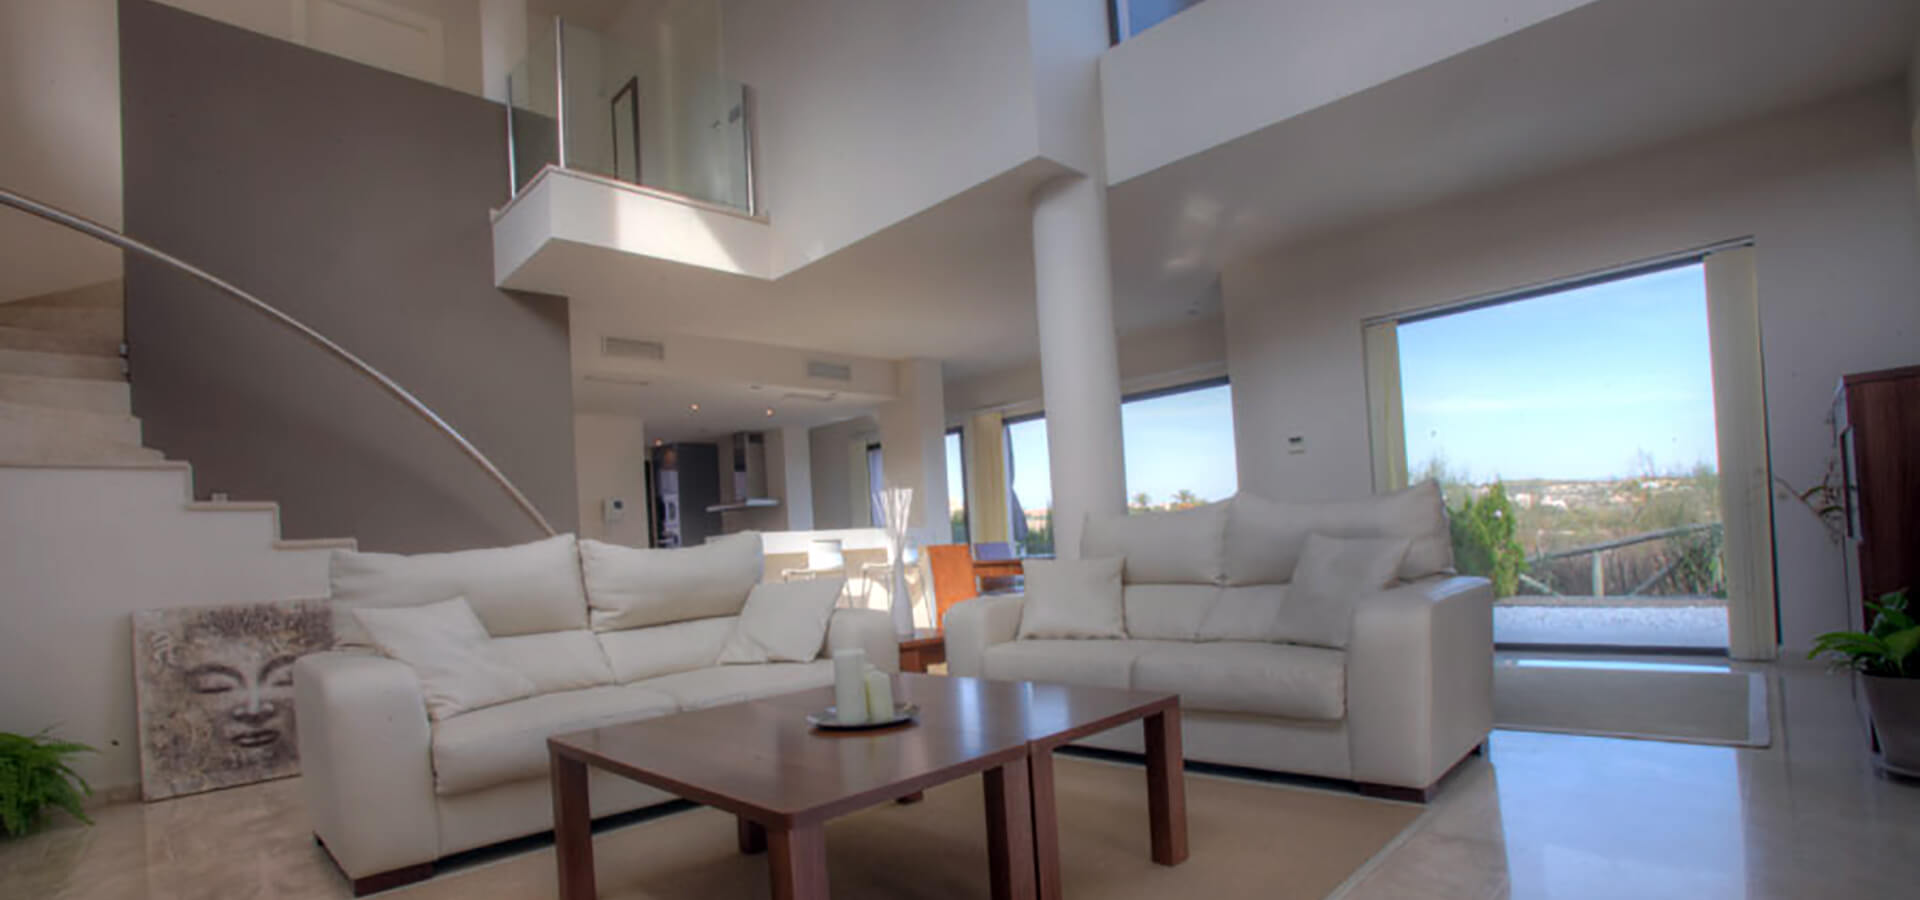 3 Bedroom Villa For Sale Valle Del Este Premium